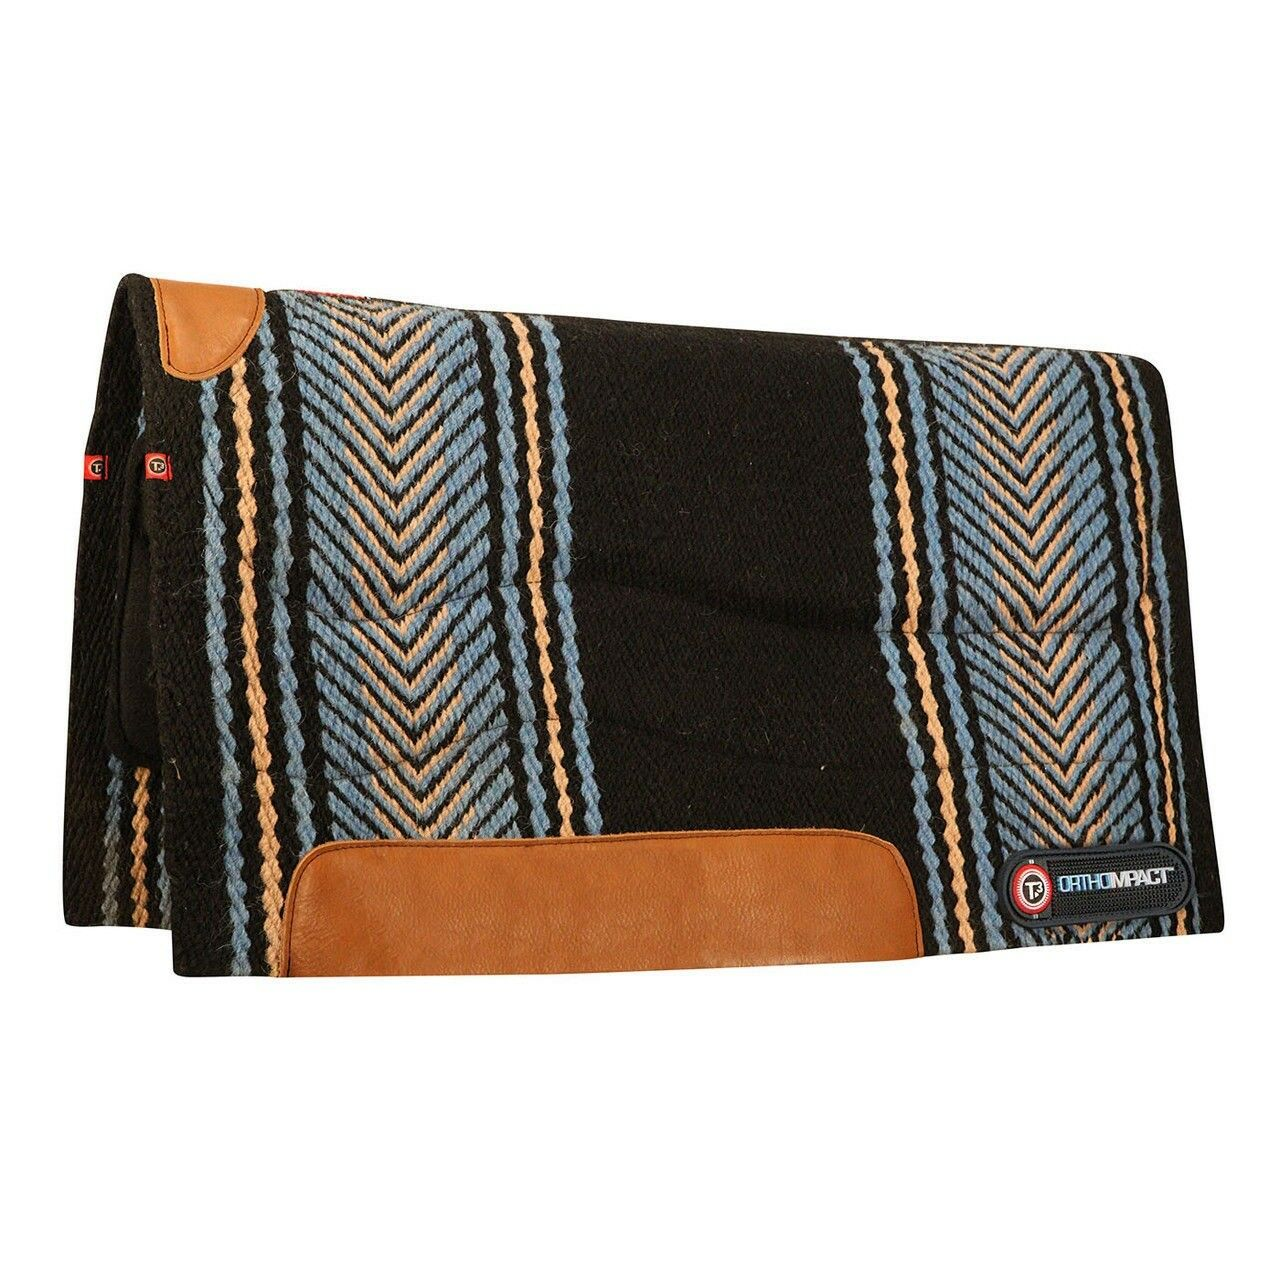 T3 System Felt Performance Western Saddle Pad with Extreme Pro  and Wear Leathers  at cheap